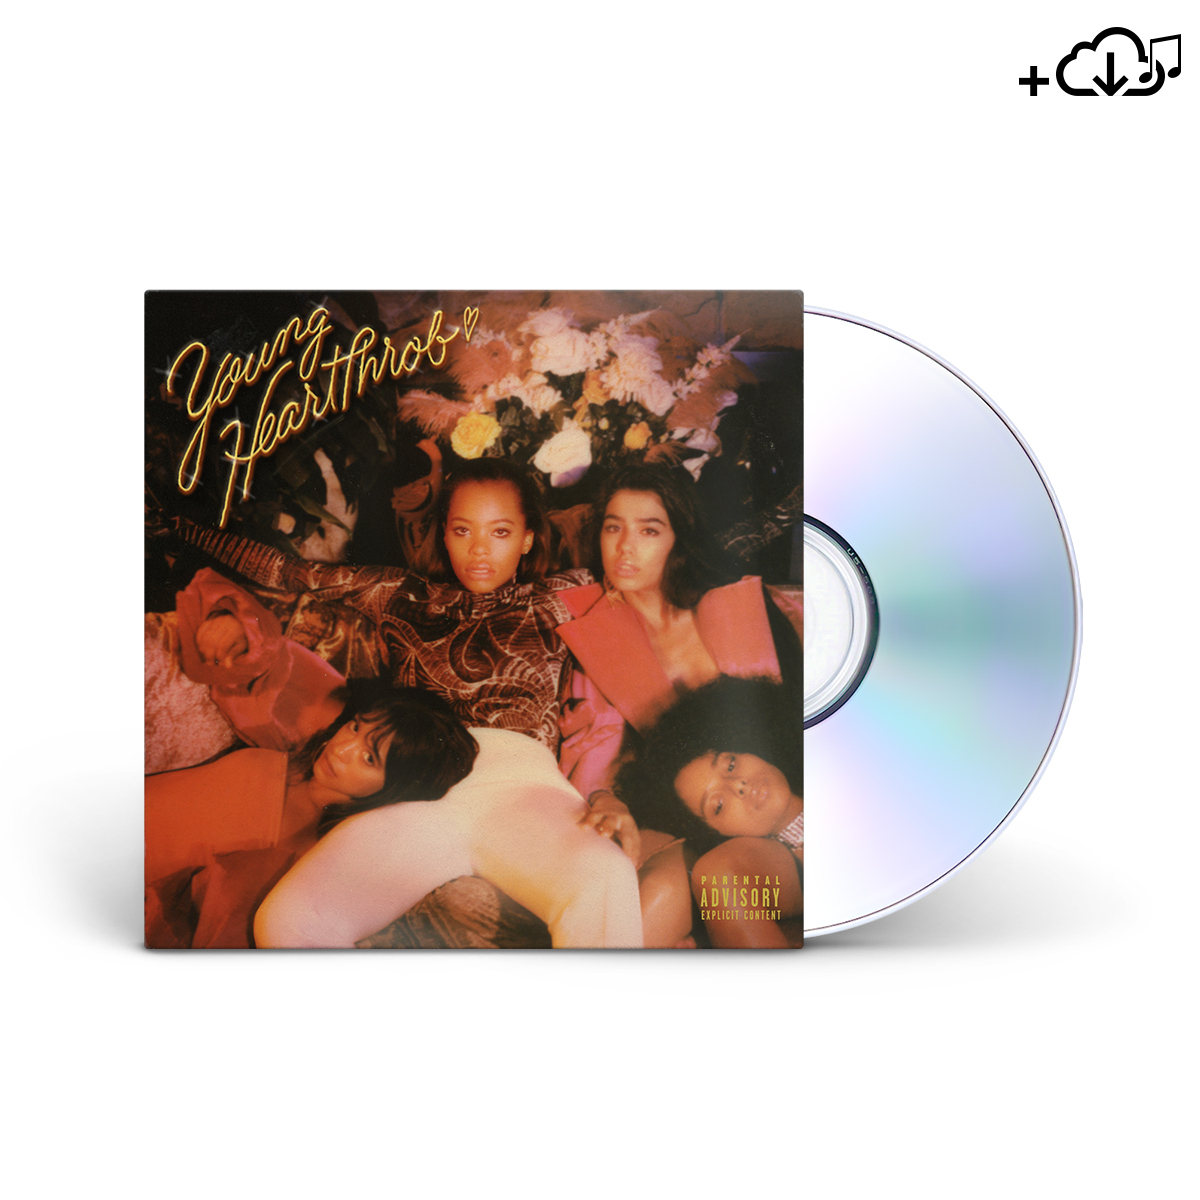 Kodie Shane - Young HeartThrob CD